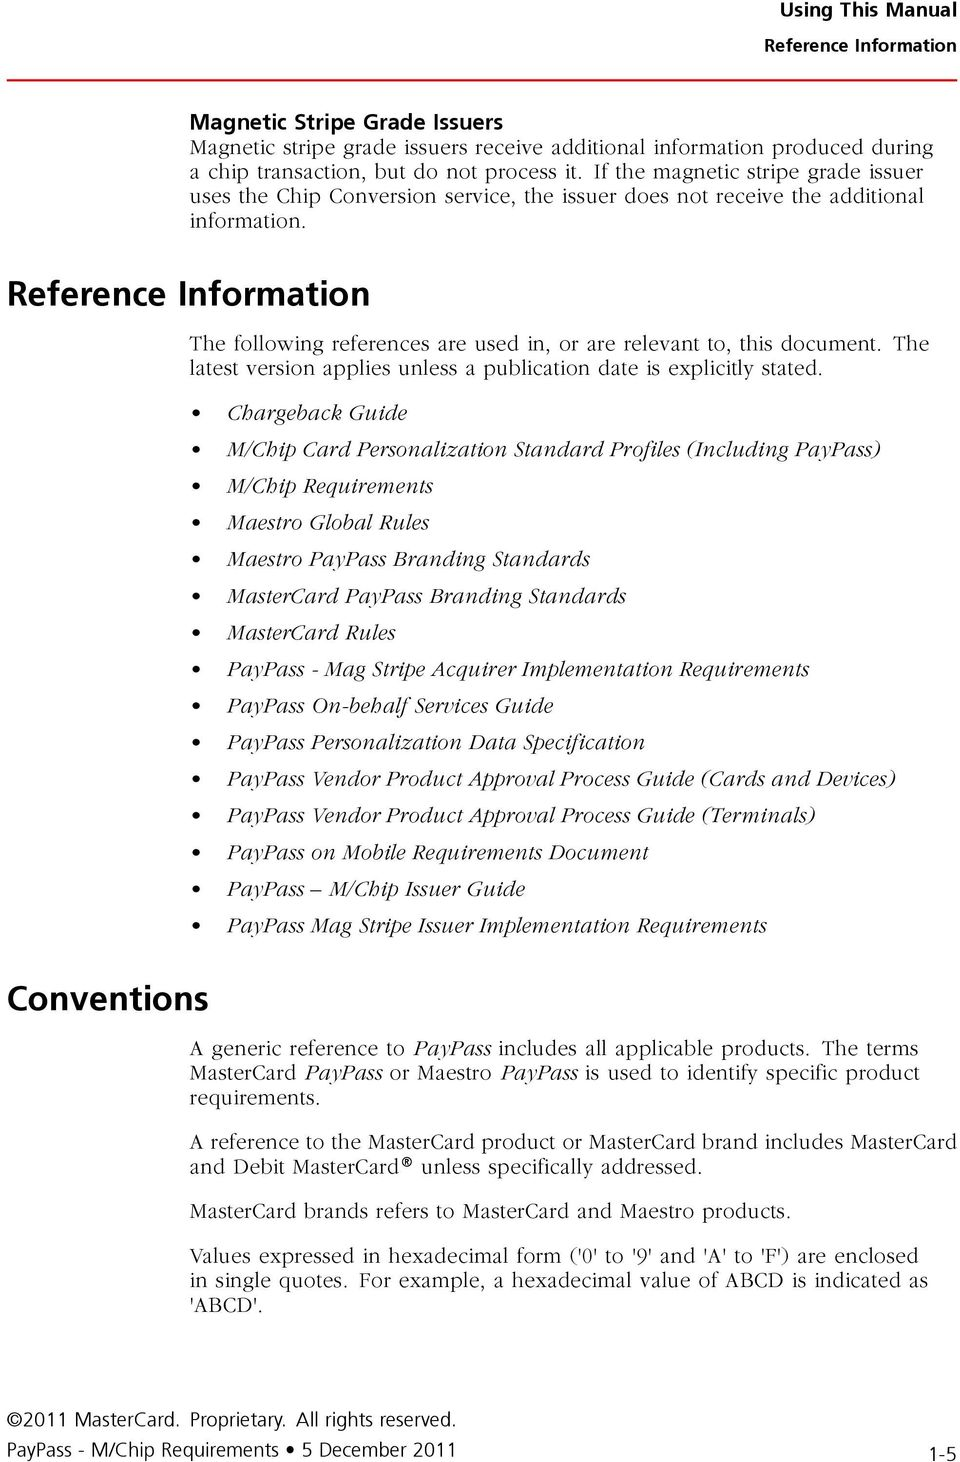 Reference Information The following references are used in, or are relevant to, this document. The latest version applies unless a publication date is explicitly stated.